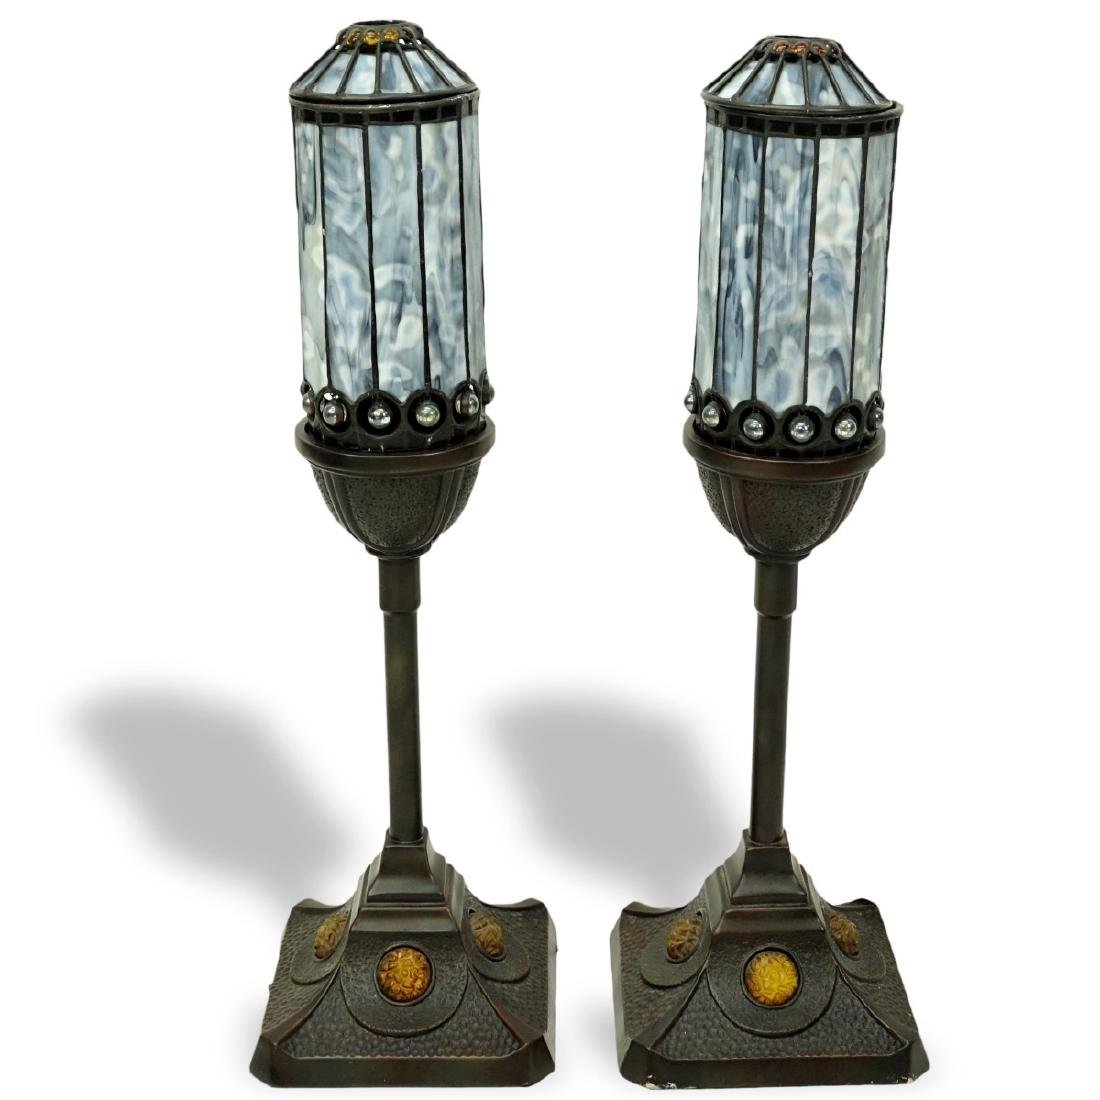 Pair Of Quoizel Inc Lamps With Leaded Glass Shades - 2